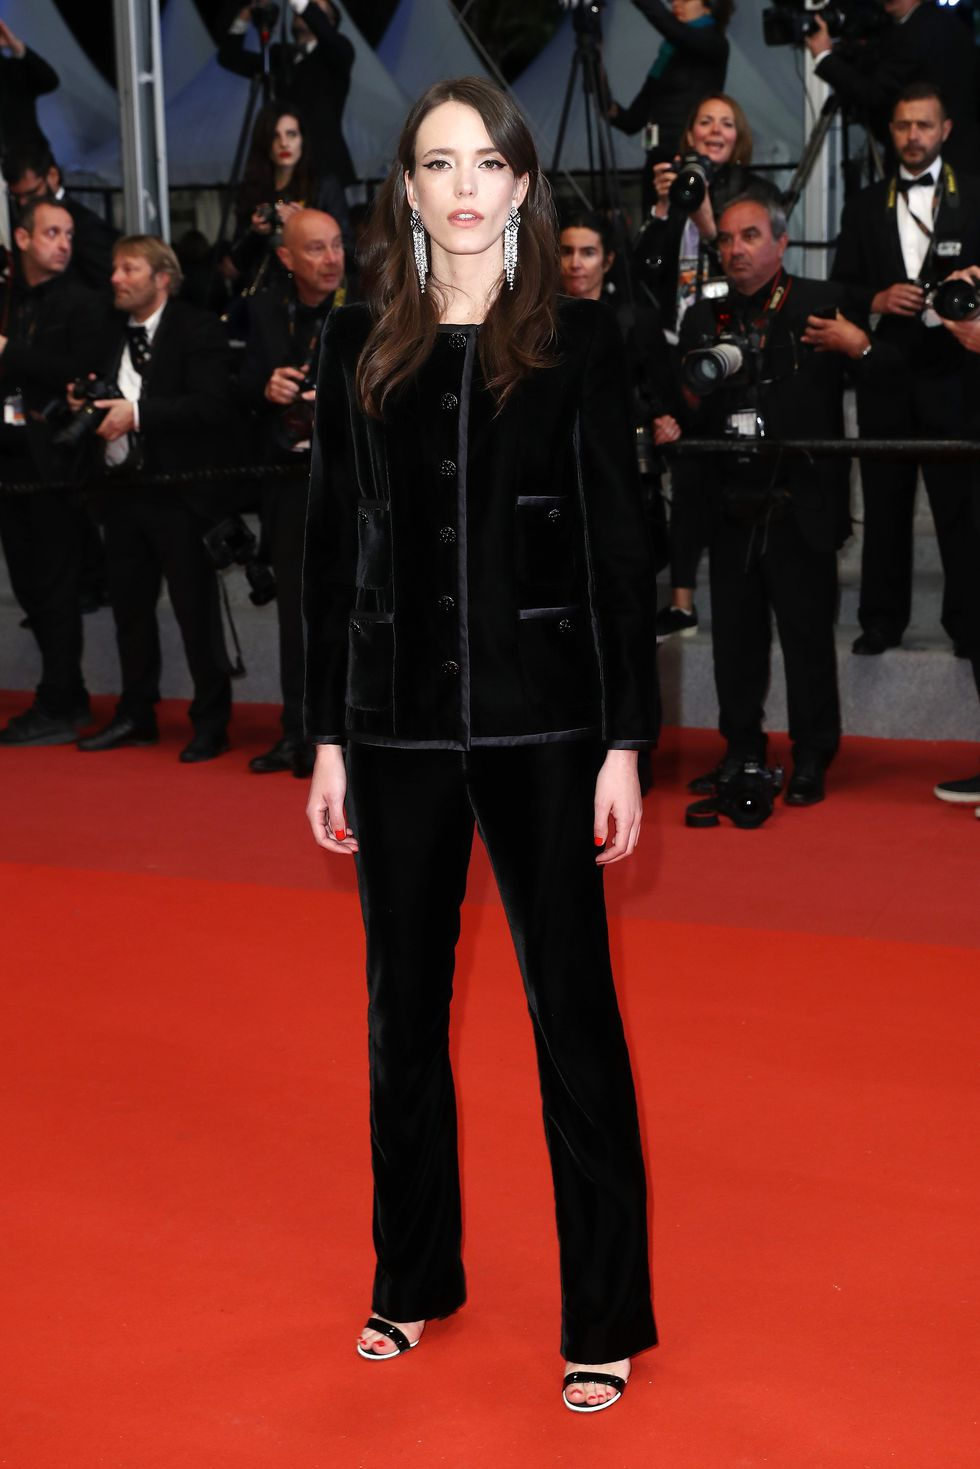 stacy-martin-cannes-film-festival-red-carpet-2018-fashion-style-best-dressed.jpg